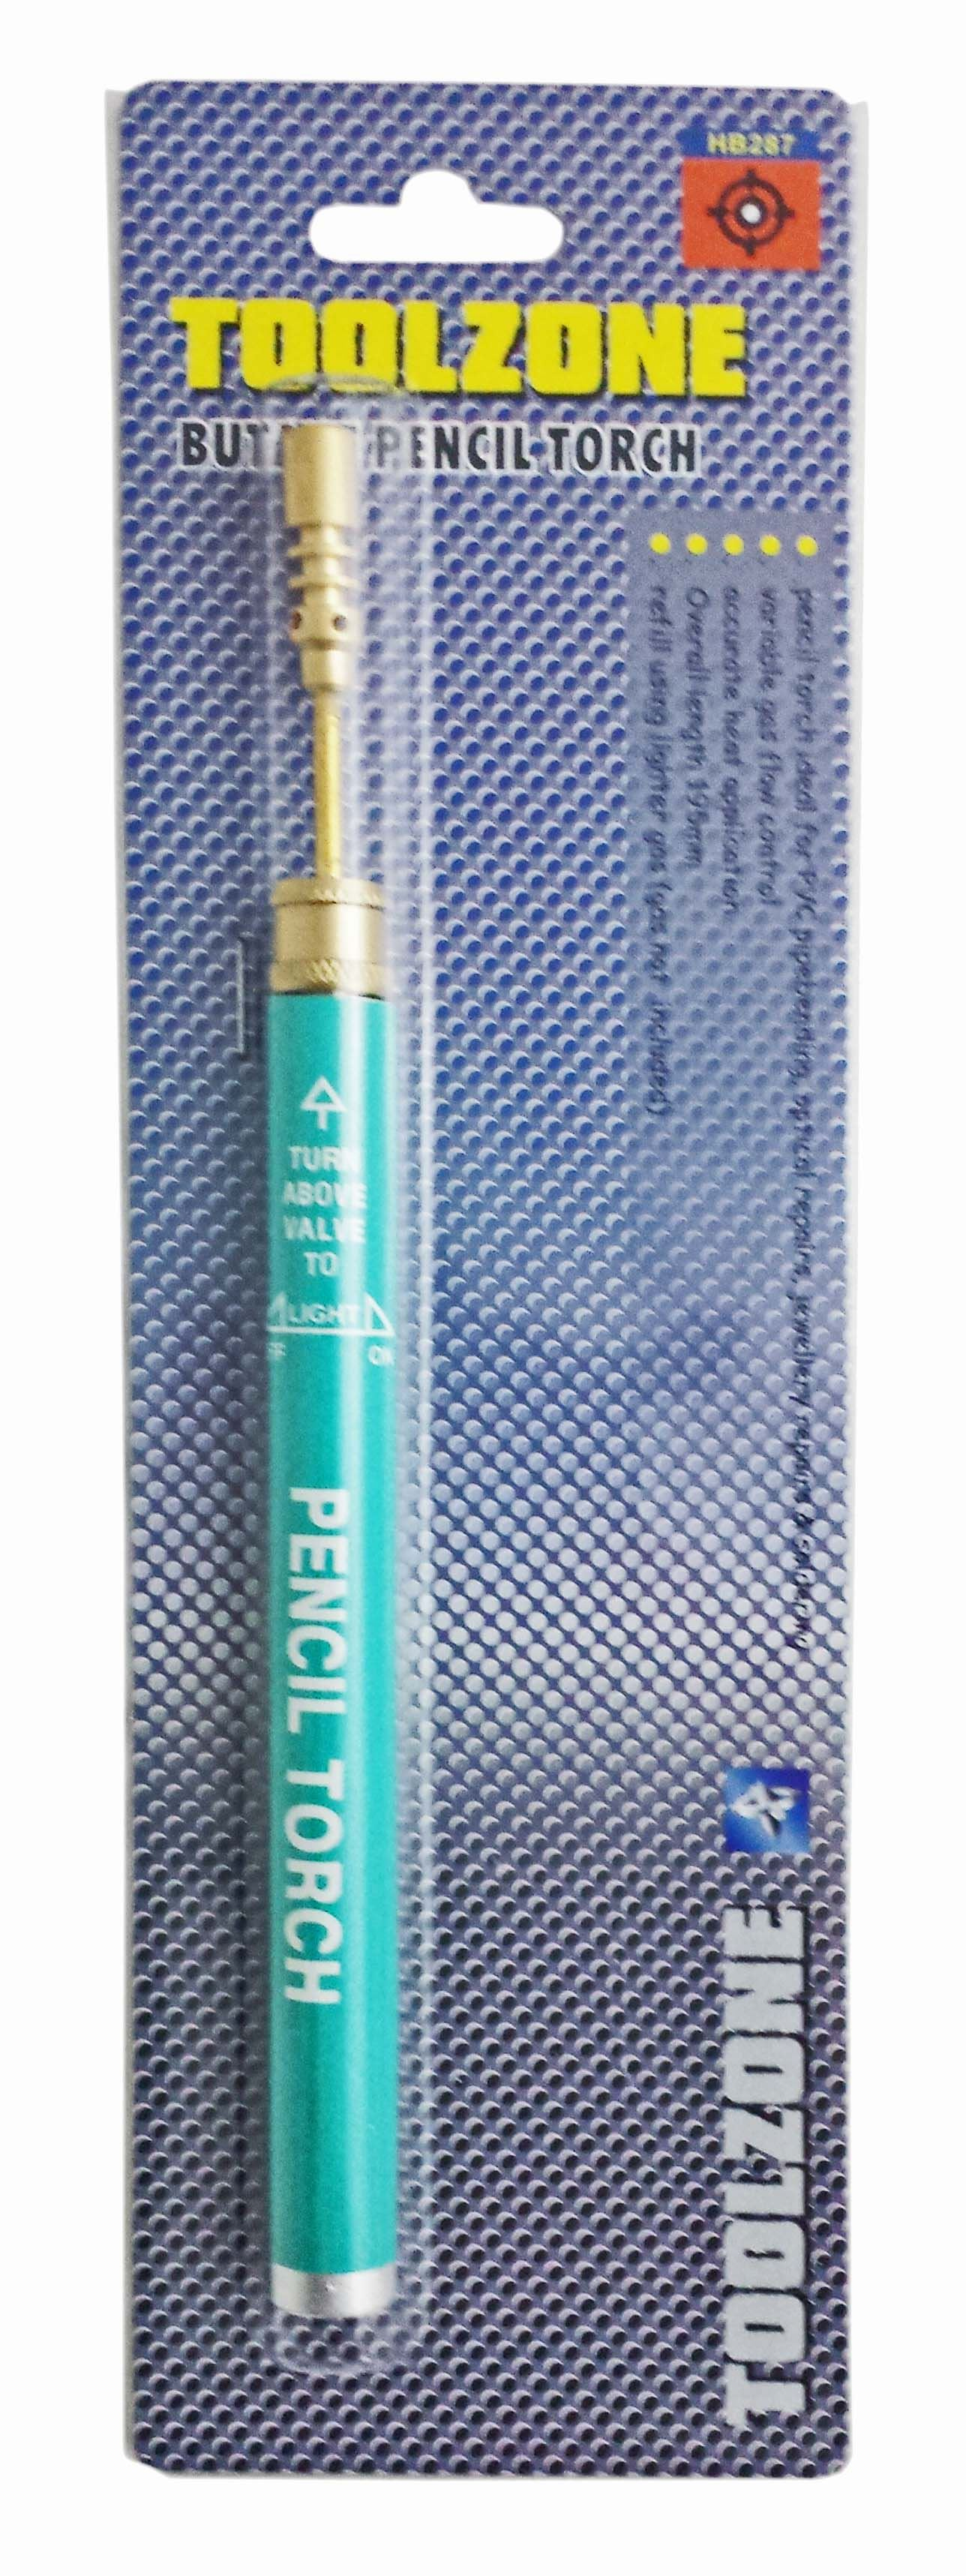 Toolzone Blue Butane Pencil Torch